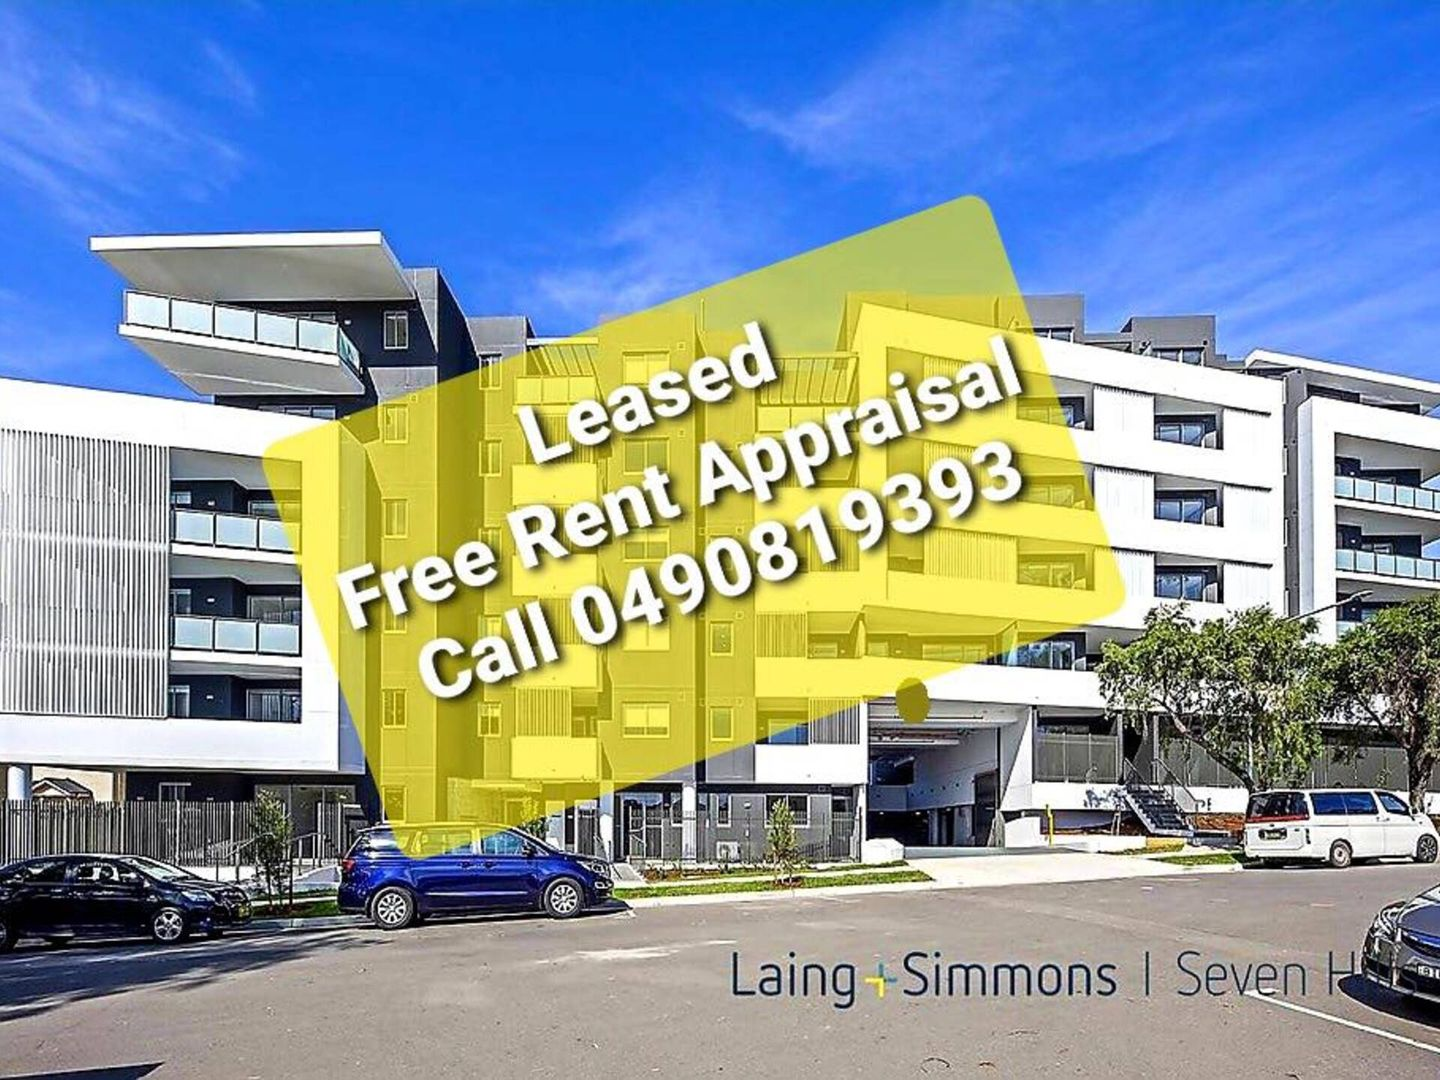 205/21A Alice St,, Seven Hills NSW 2147, Image 0